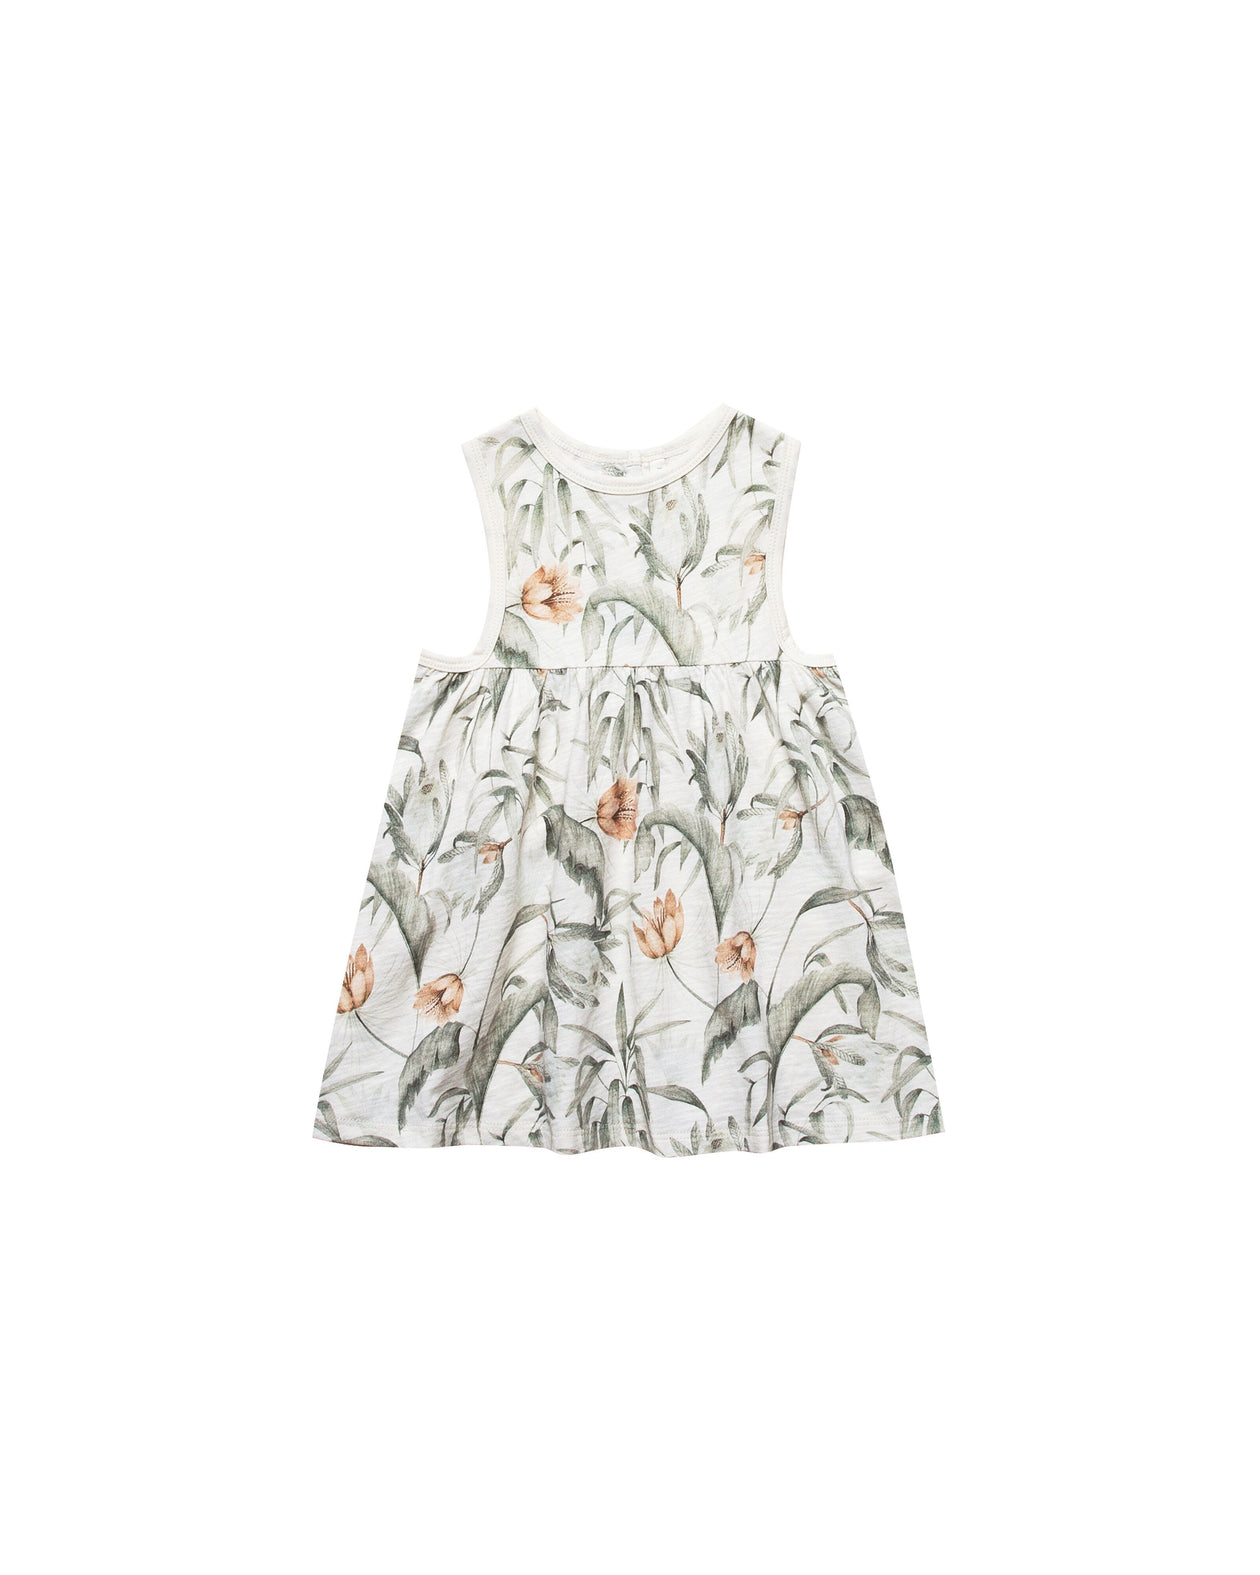 Tropical Layla Mini Dress from Rylee & Cru